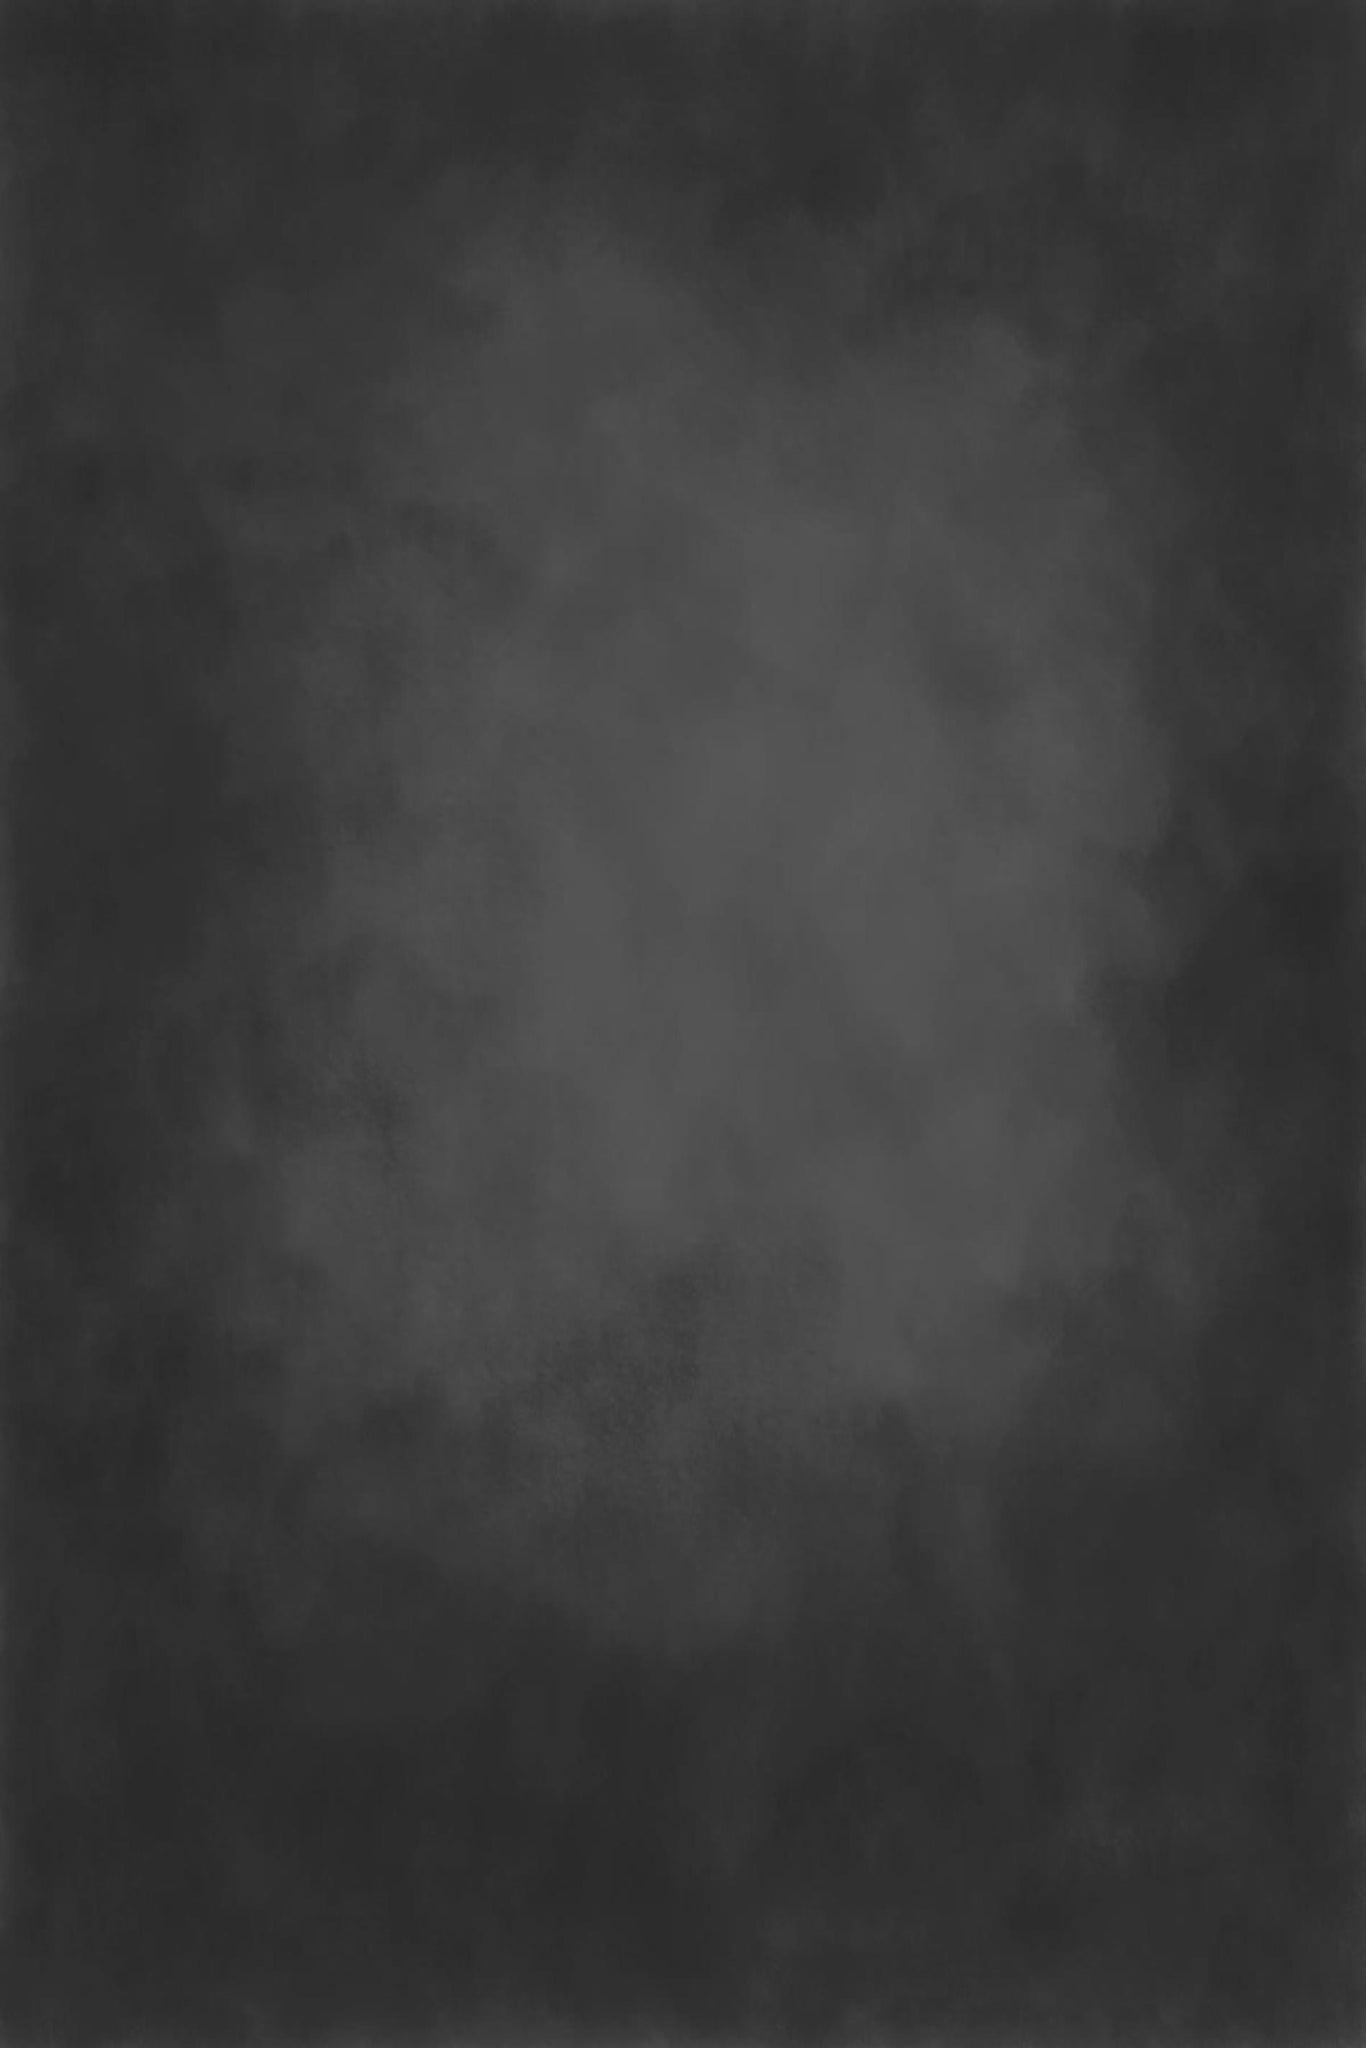 Load image into Gallery viewer, Katebackdrop:Kate Abstract Cold Tones Of Gray Oliphant Textured Backdrop